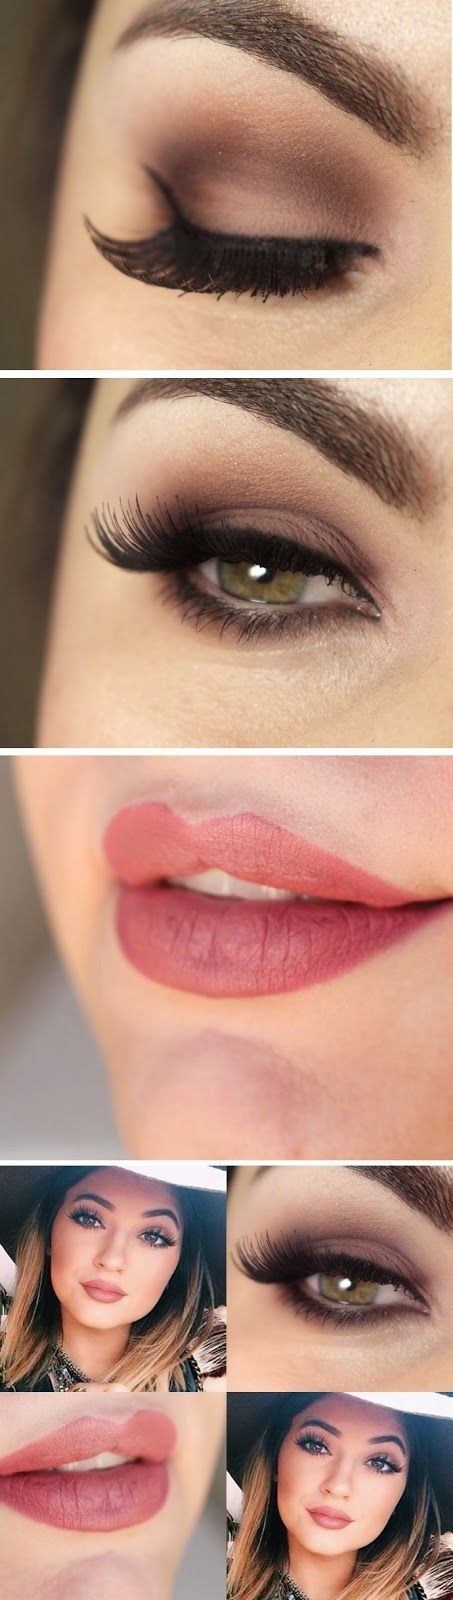 Top Makeup Hacks To Look Younger Than You Actually Are http://mymakeupideas.com/%EF%BB%BFtop-makeup-hacks-to-look-younger-than-you-actually-are/